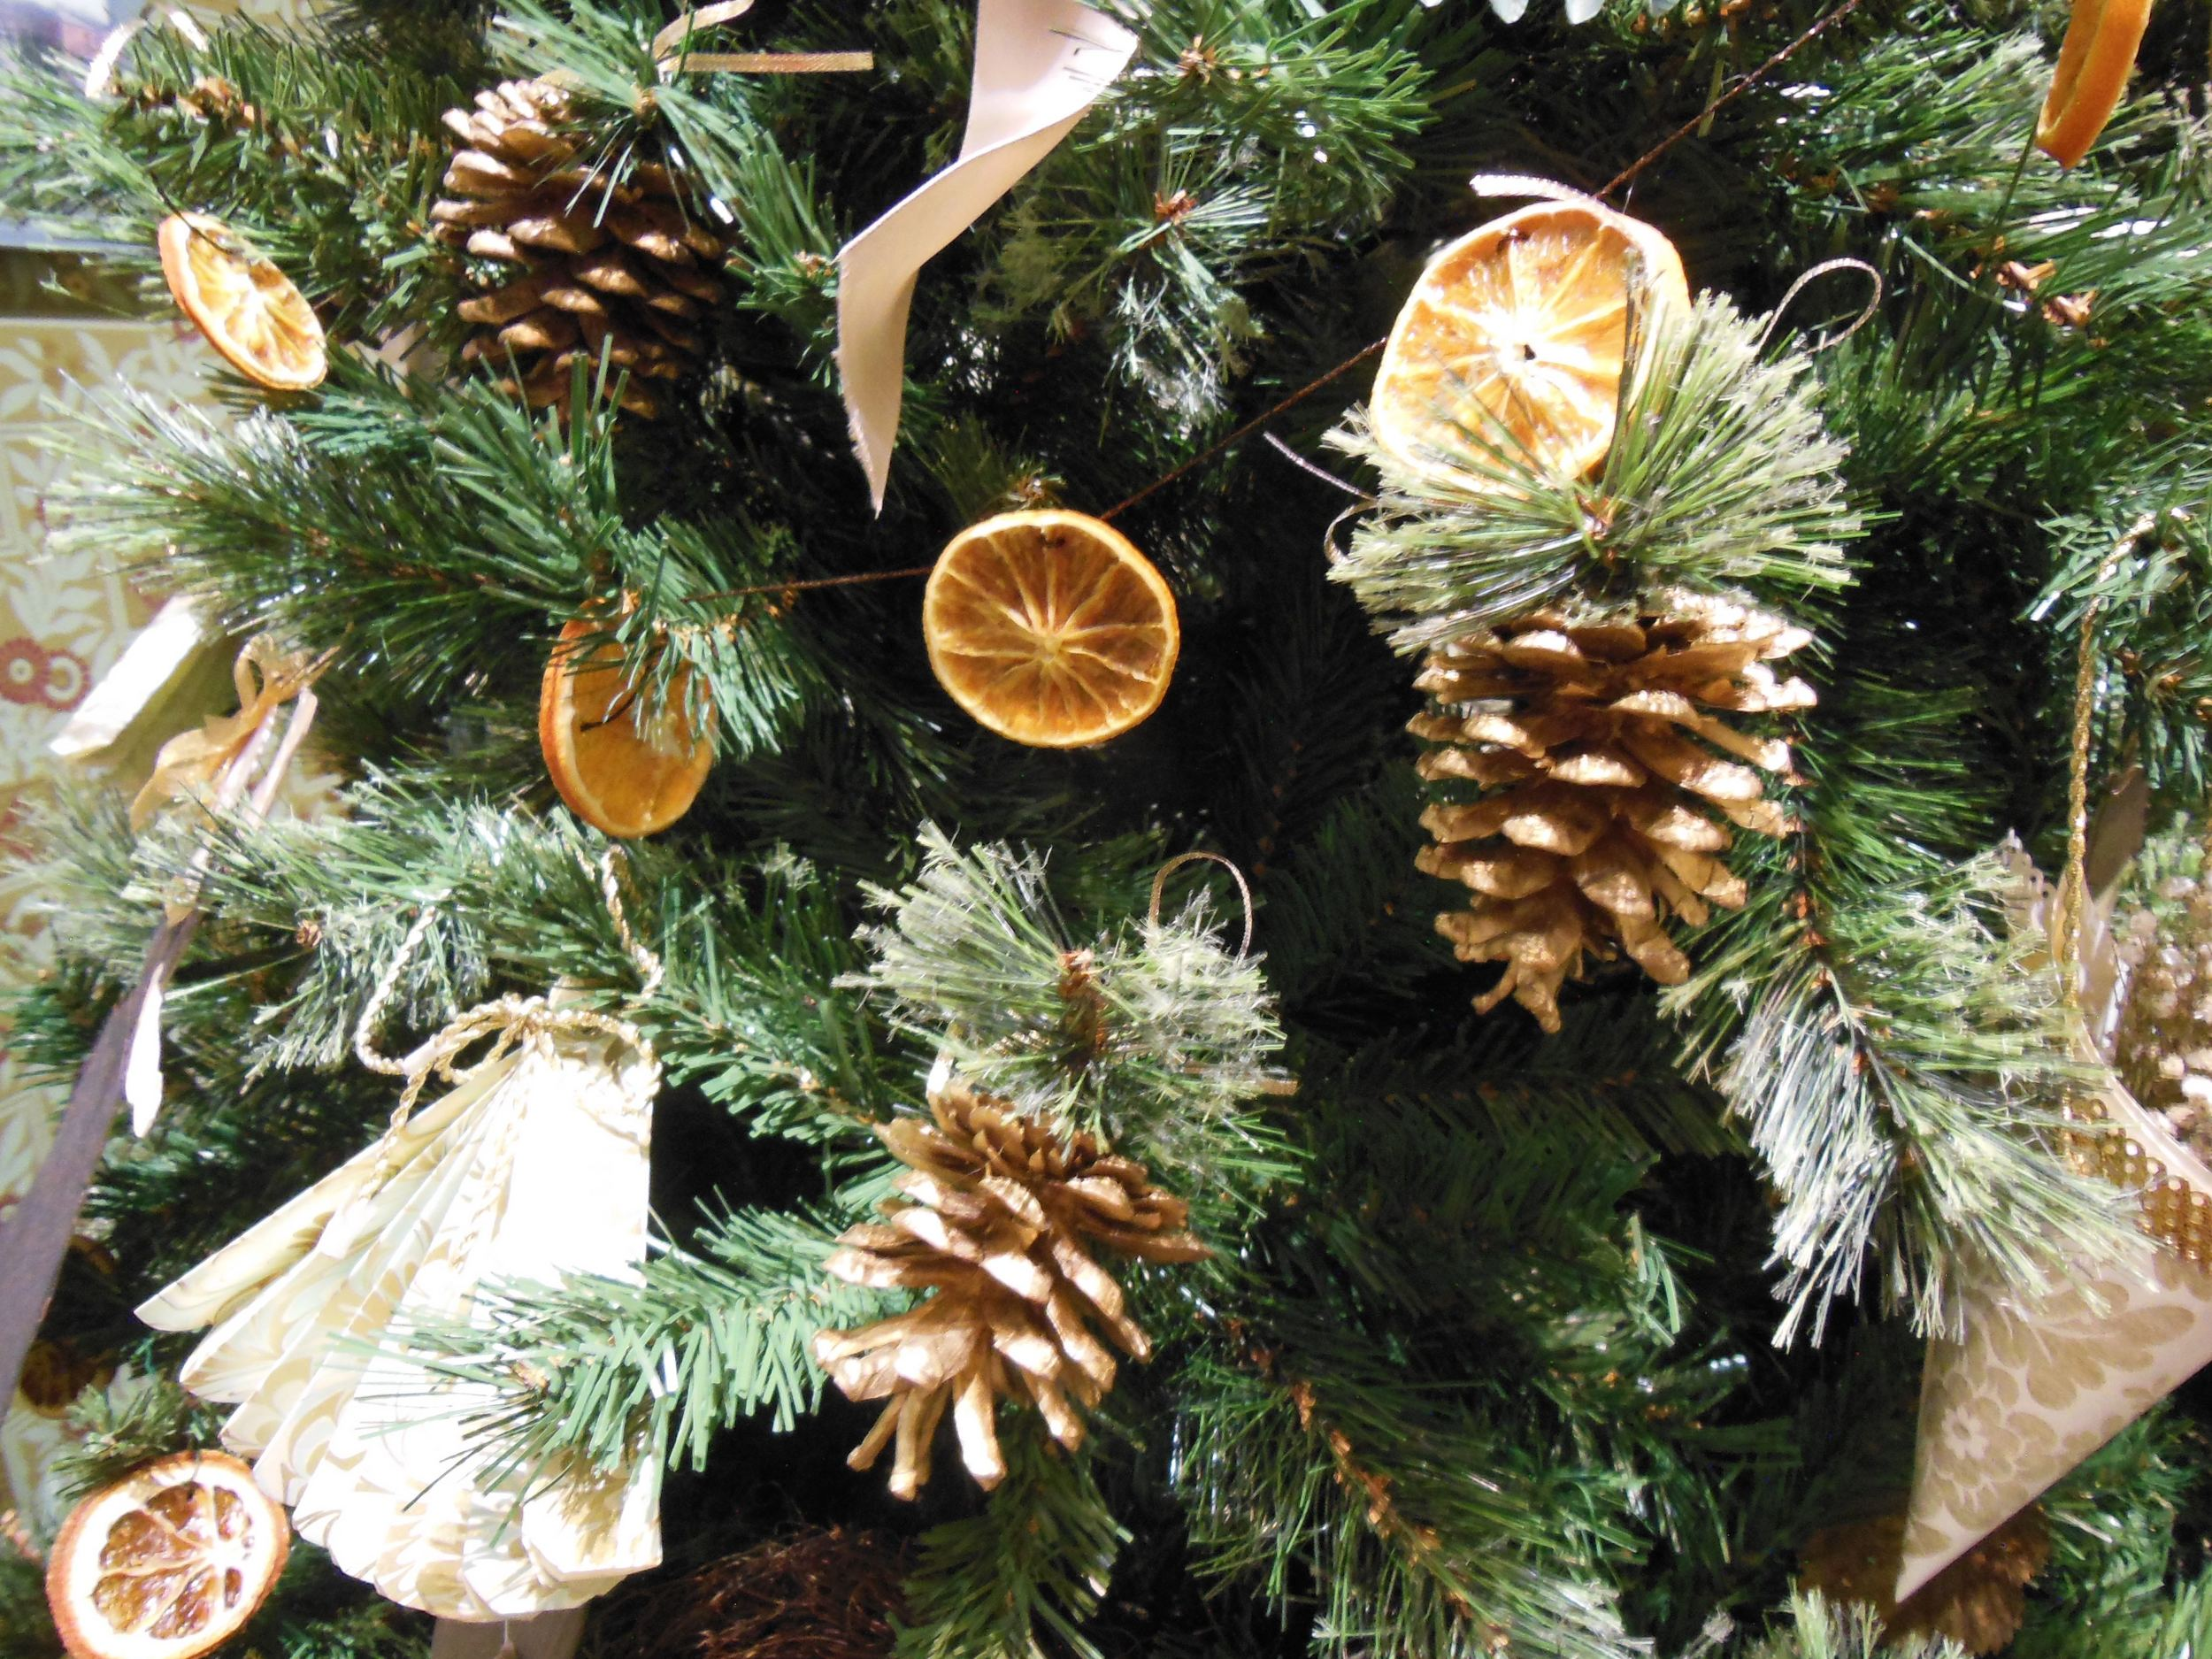 Dried orange slices strung as a garland through a Christmas tree.